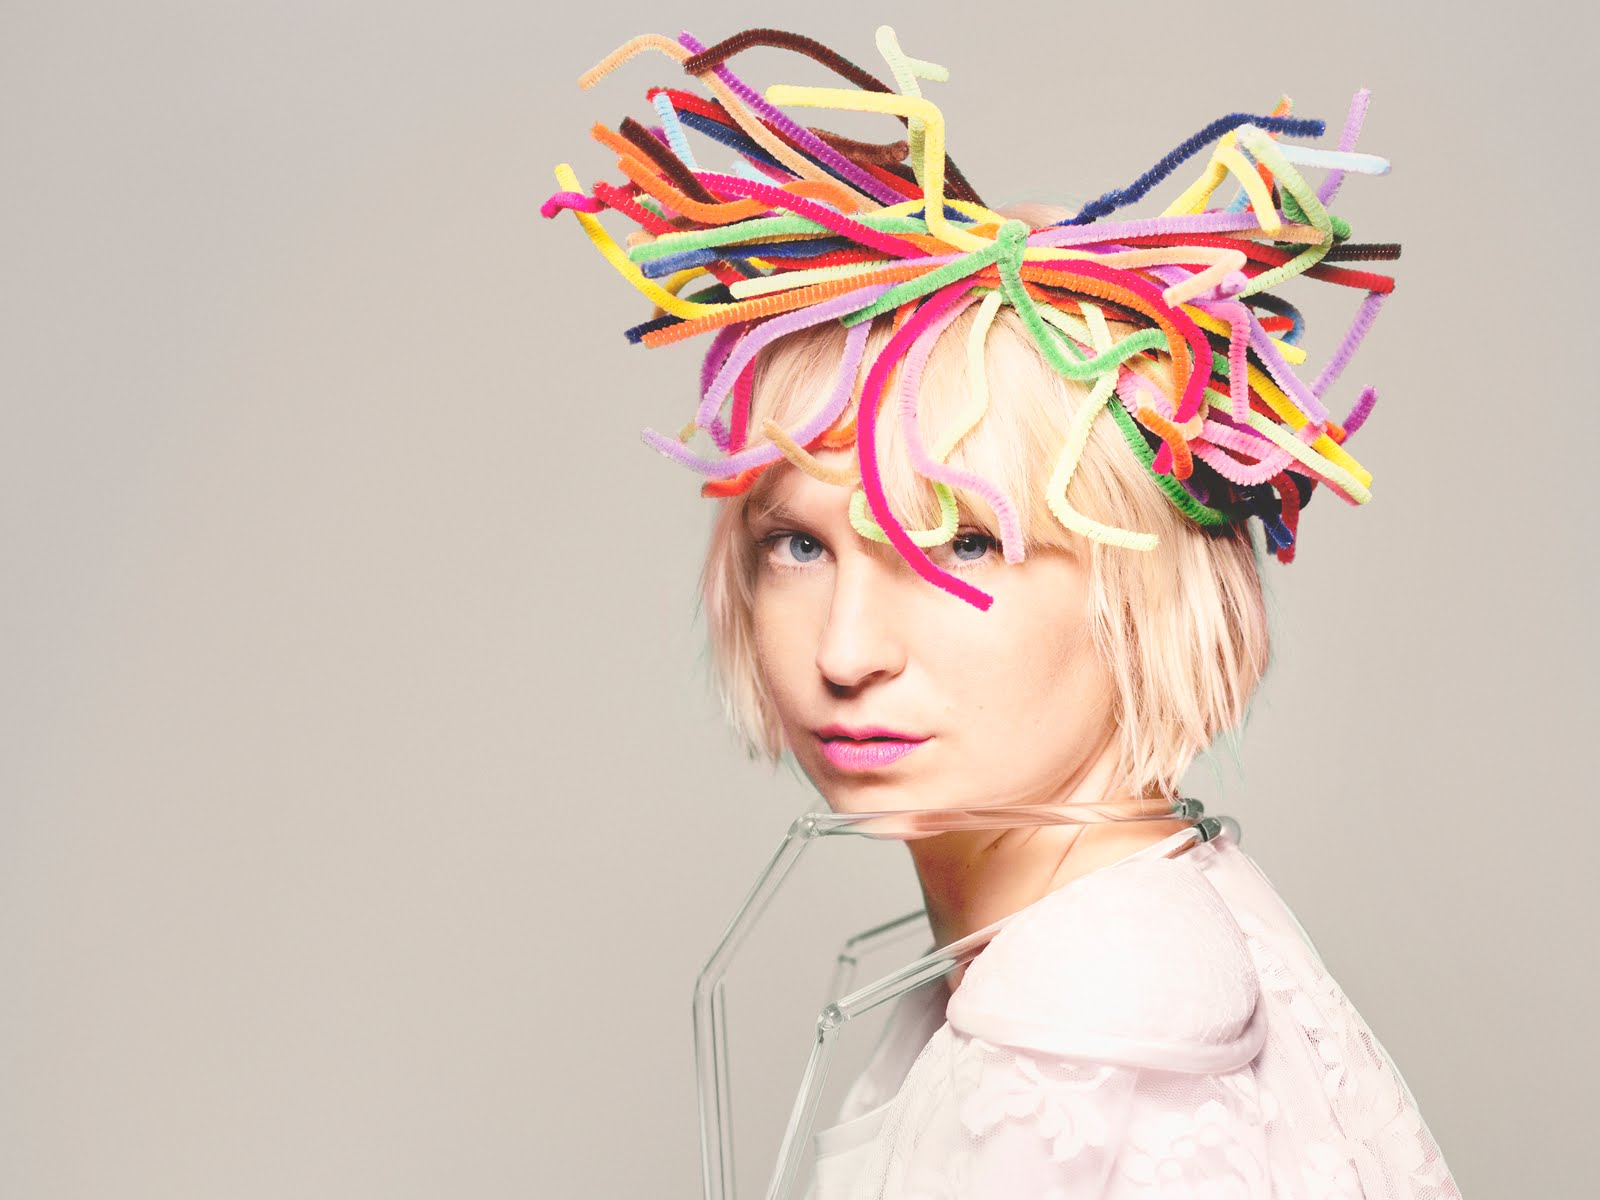 Sia Performs On Saturday Night Live Without Her Face Showing Master Herald